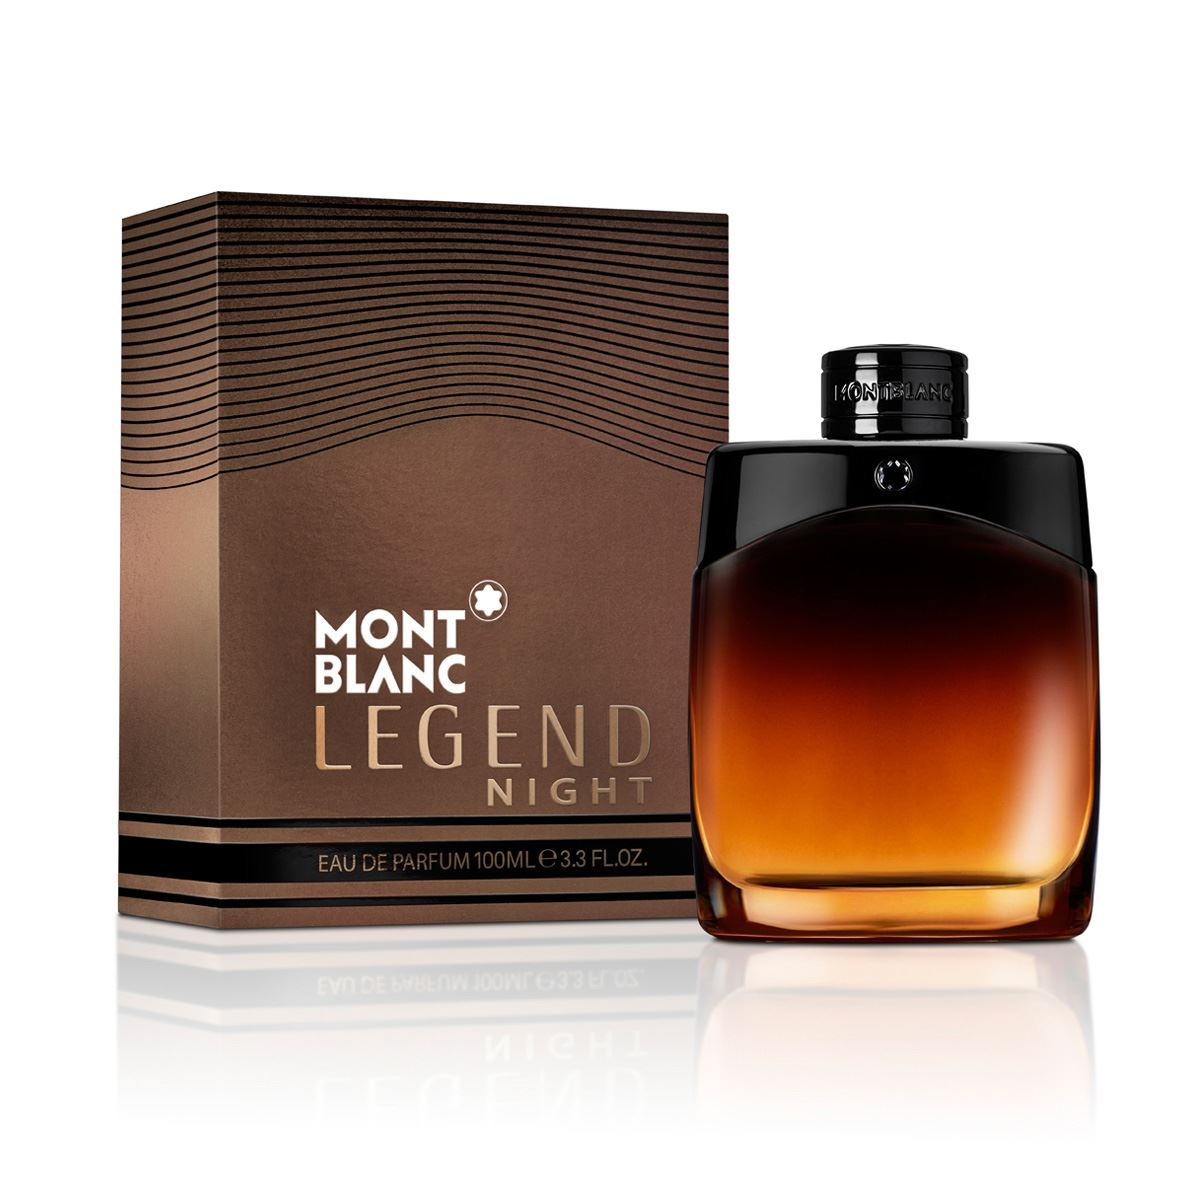 Montblanc legend night edp 100 ml  - Sanborns